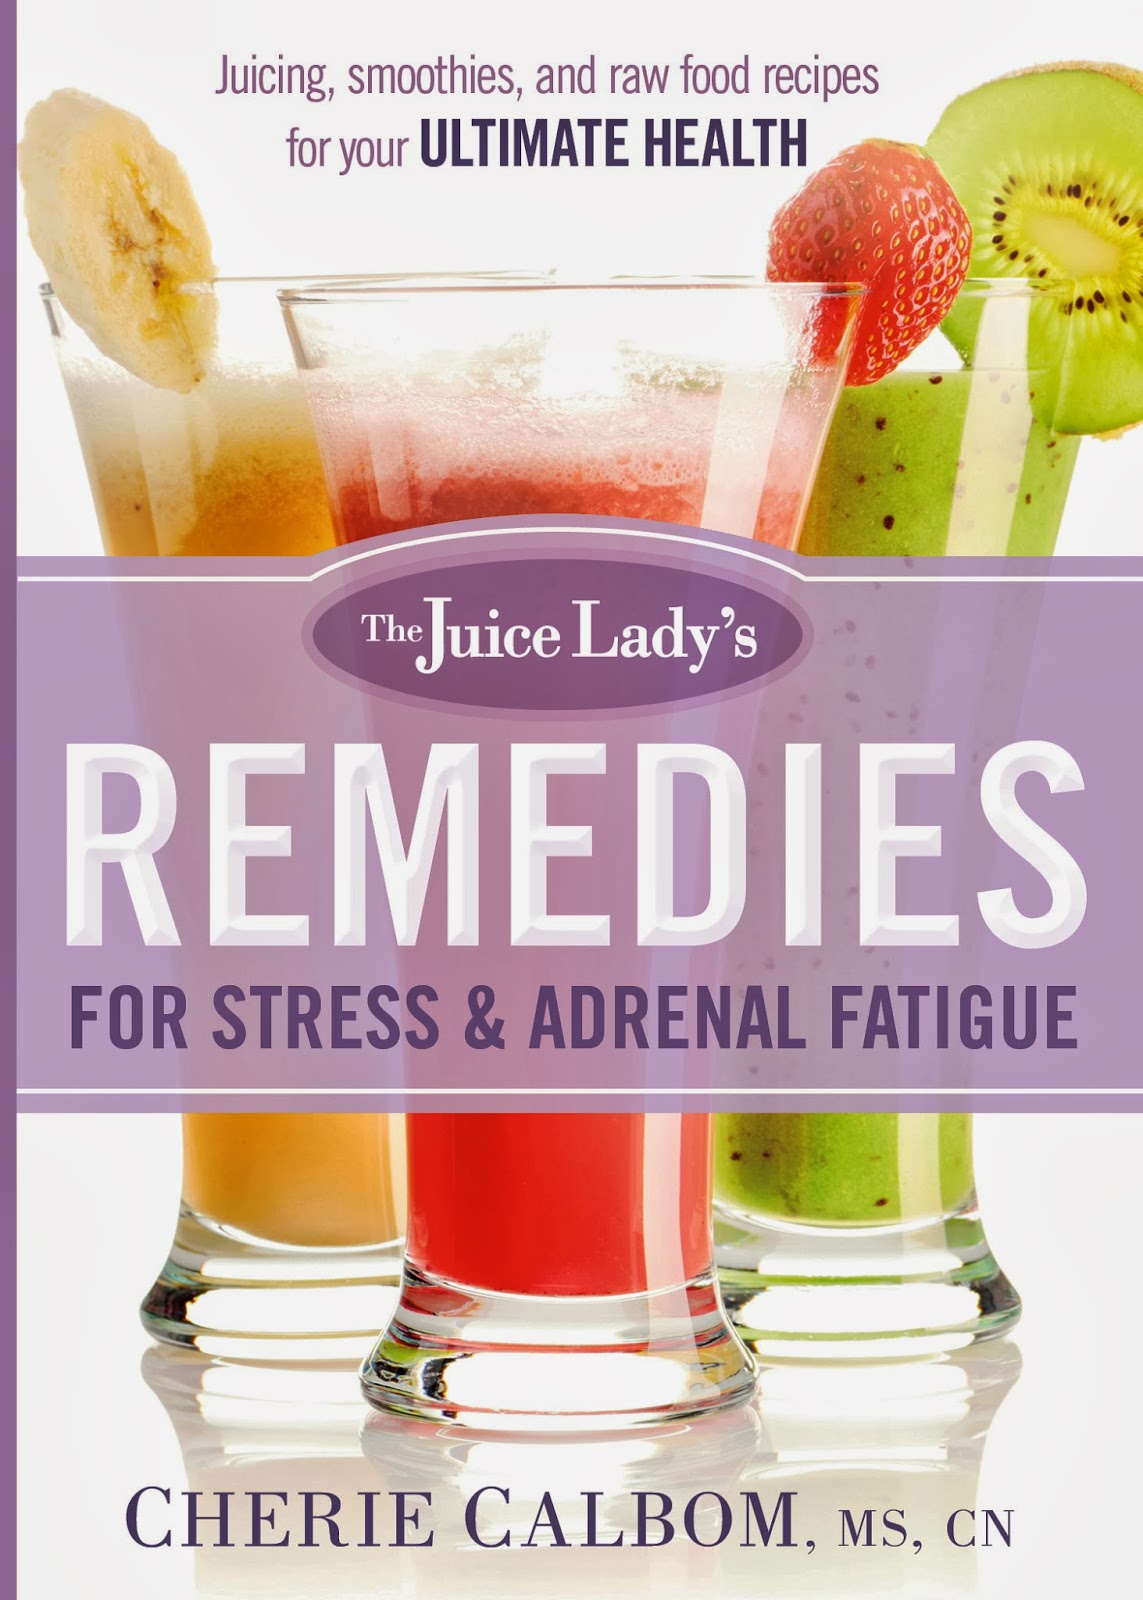 The Juice Lady's Remedies Book